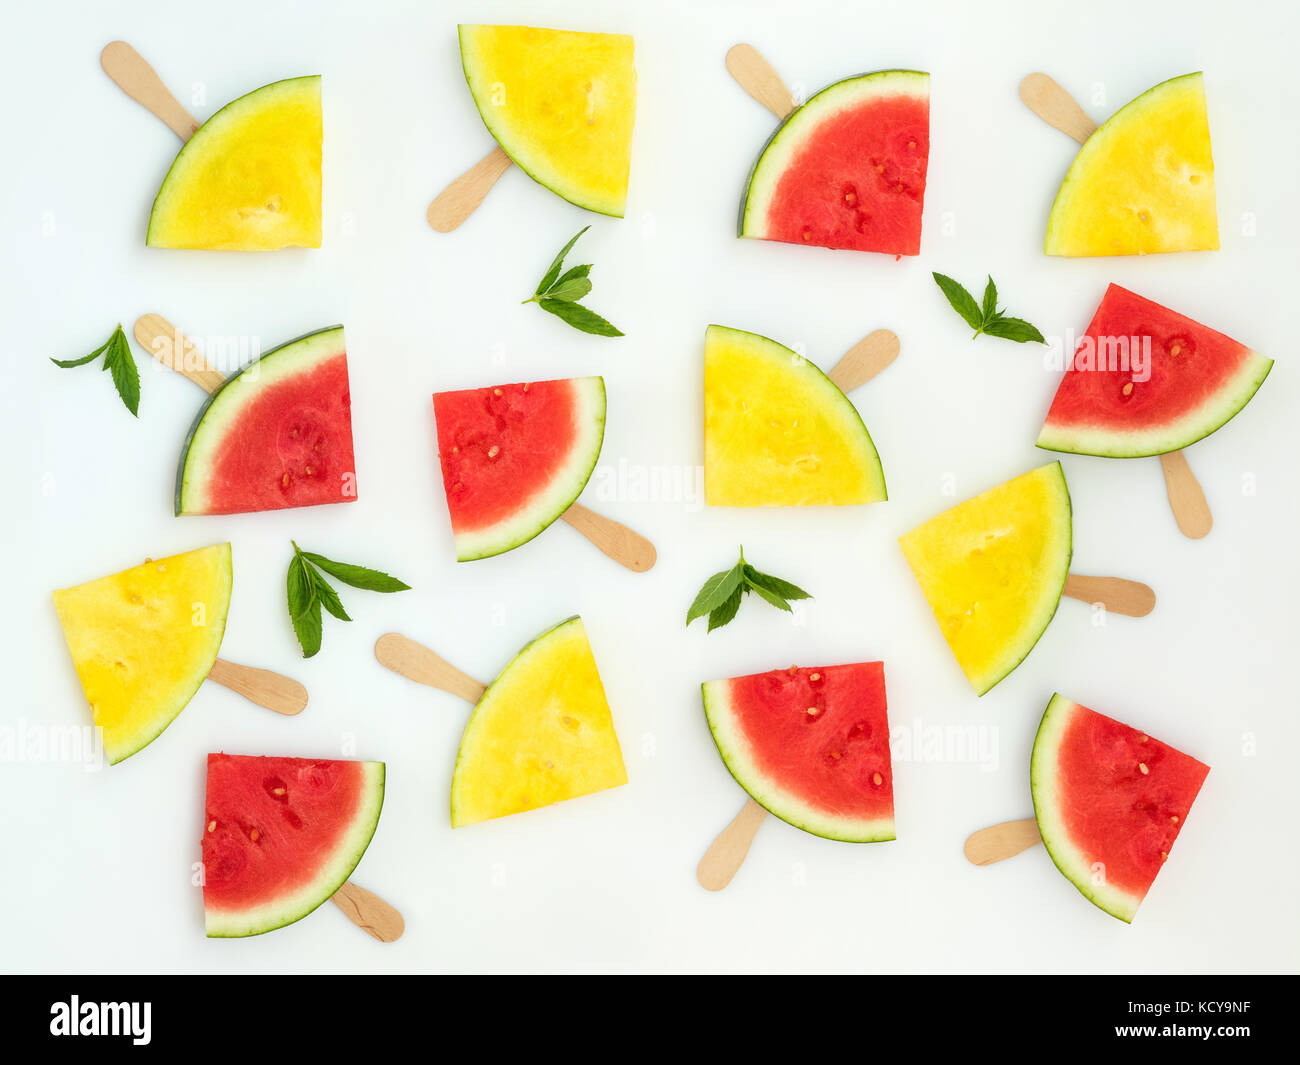 Red and yellow watermelon slices on wooden sticks with mint leaves among them on a white background. Flat lay, top - Stock Image